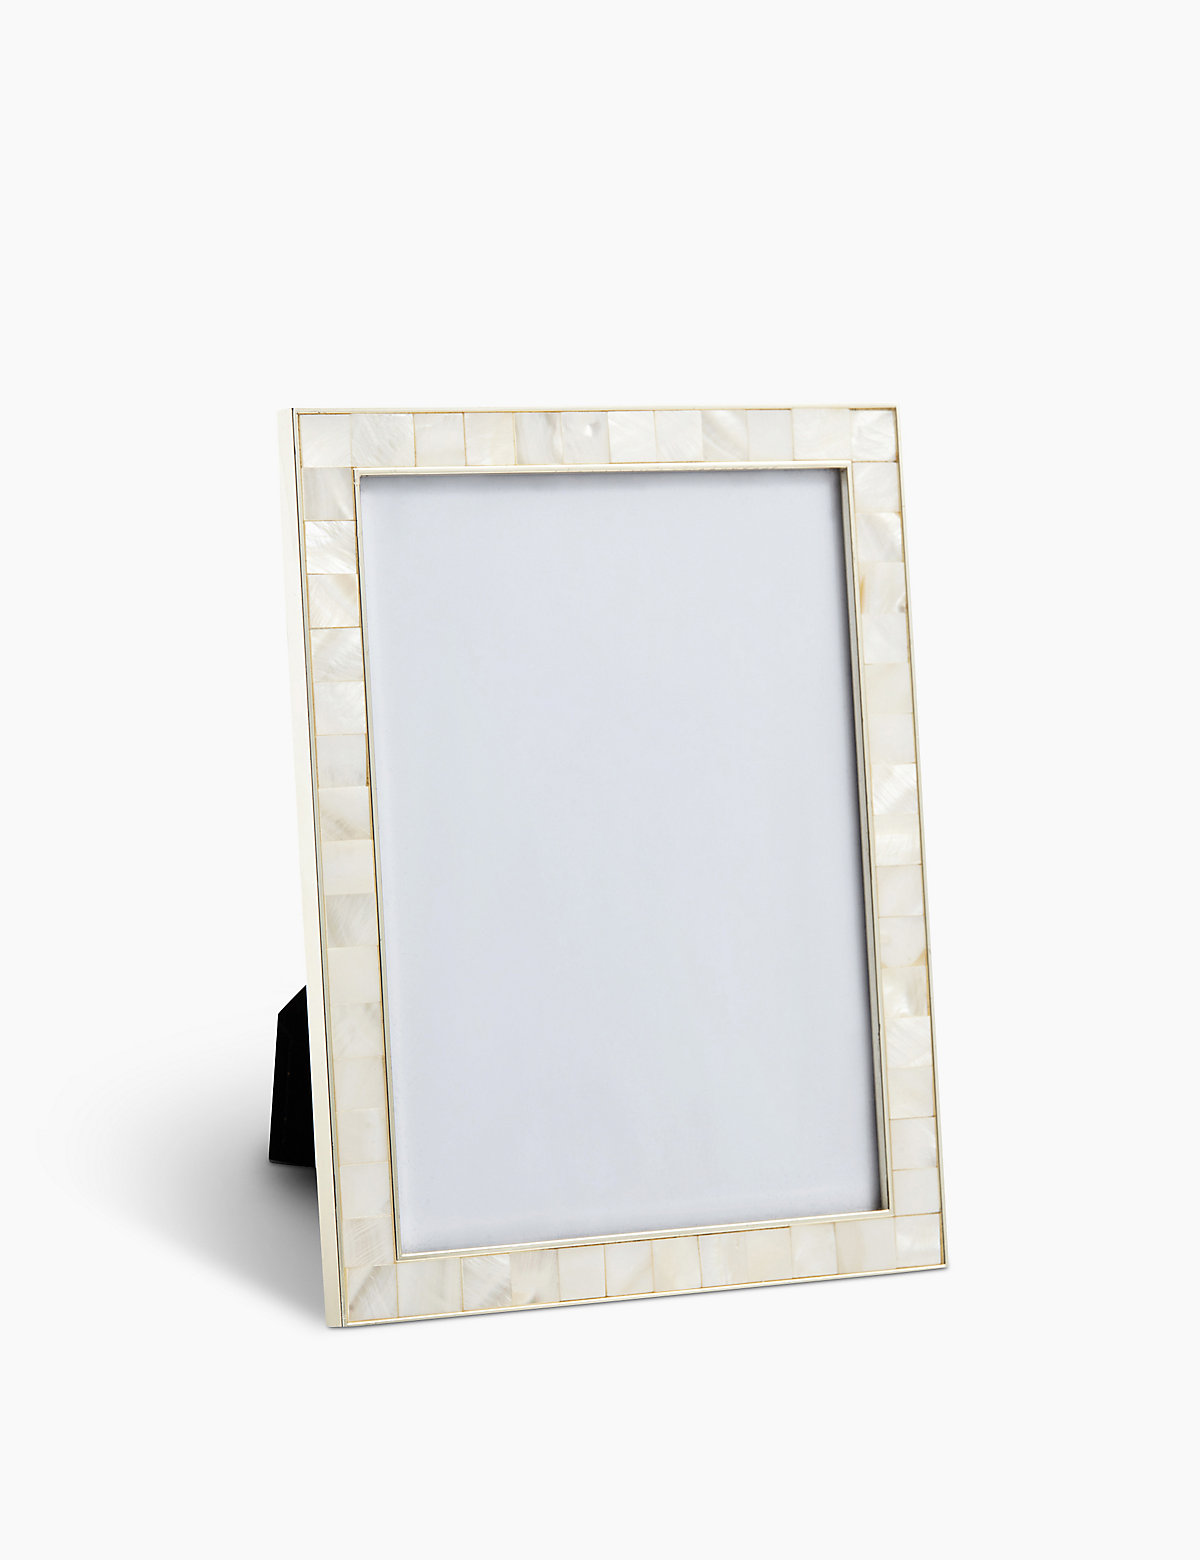 Single Marks and spencers photo frames